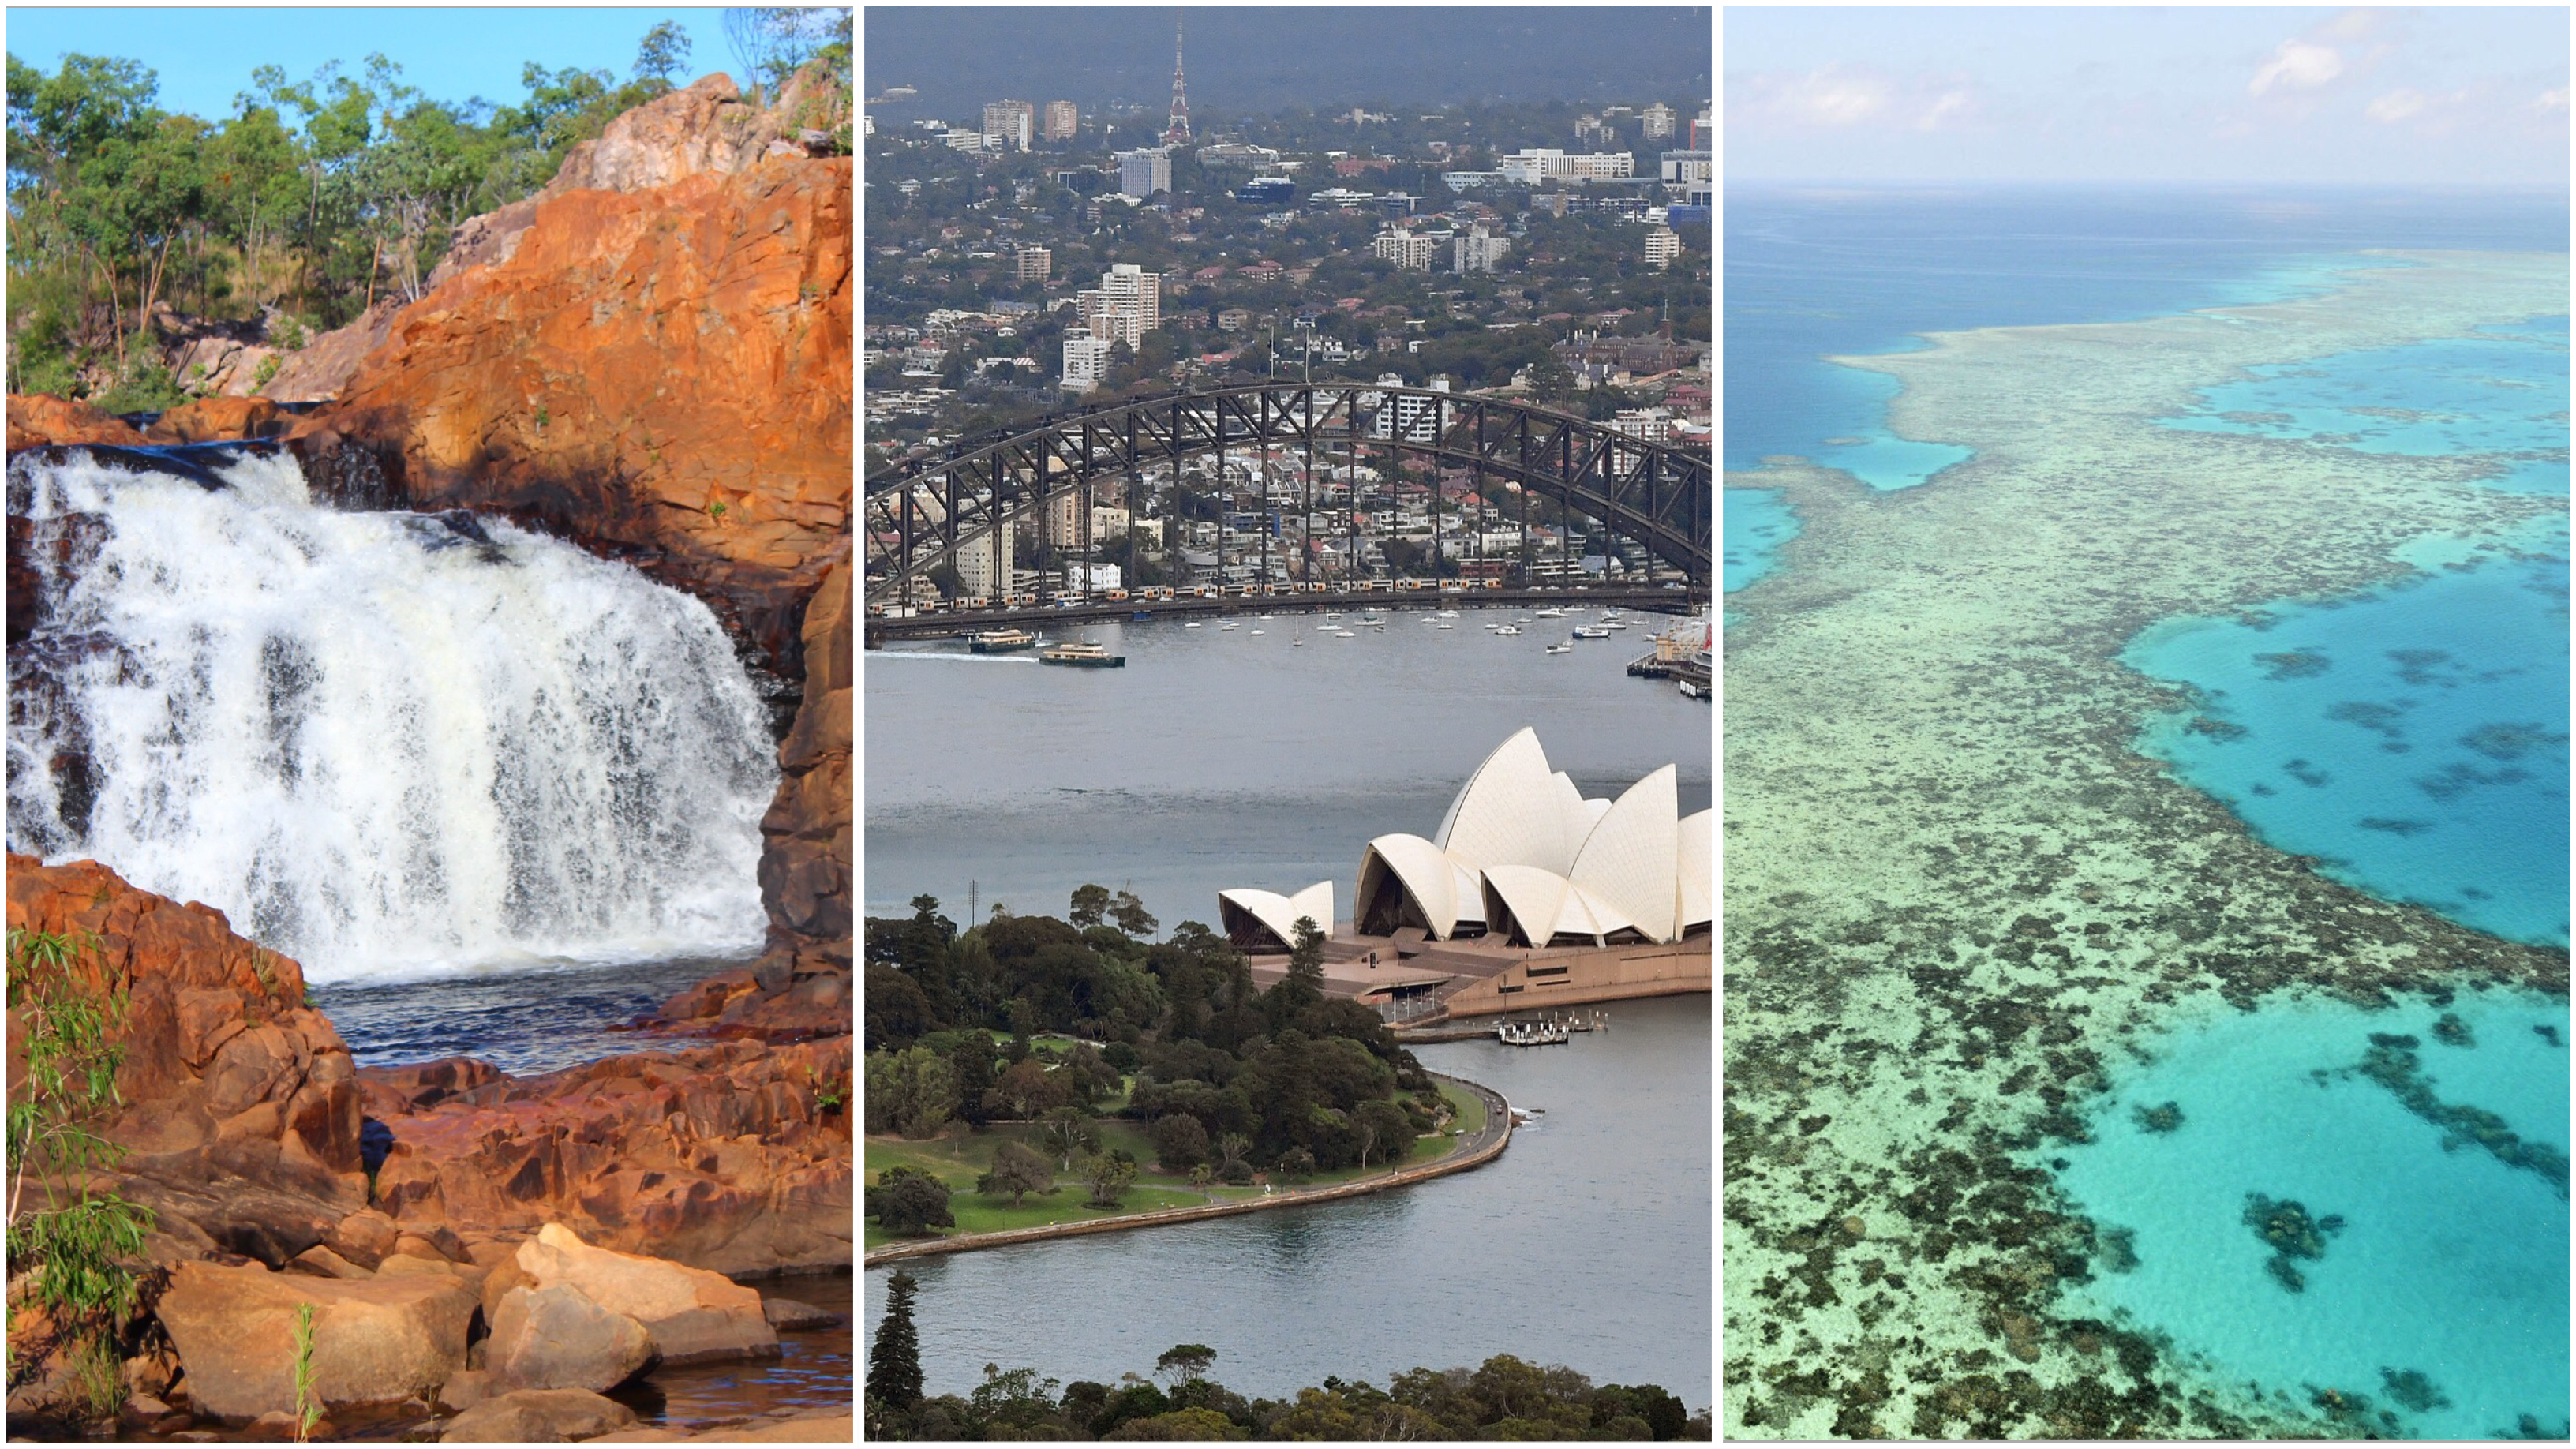 Tourists brought in more than $1113.4 billion to Ayustralia with many travelling to regional parts of the country.